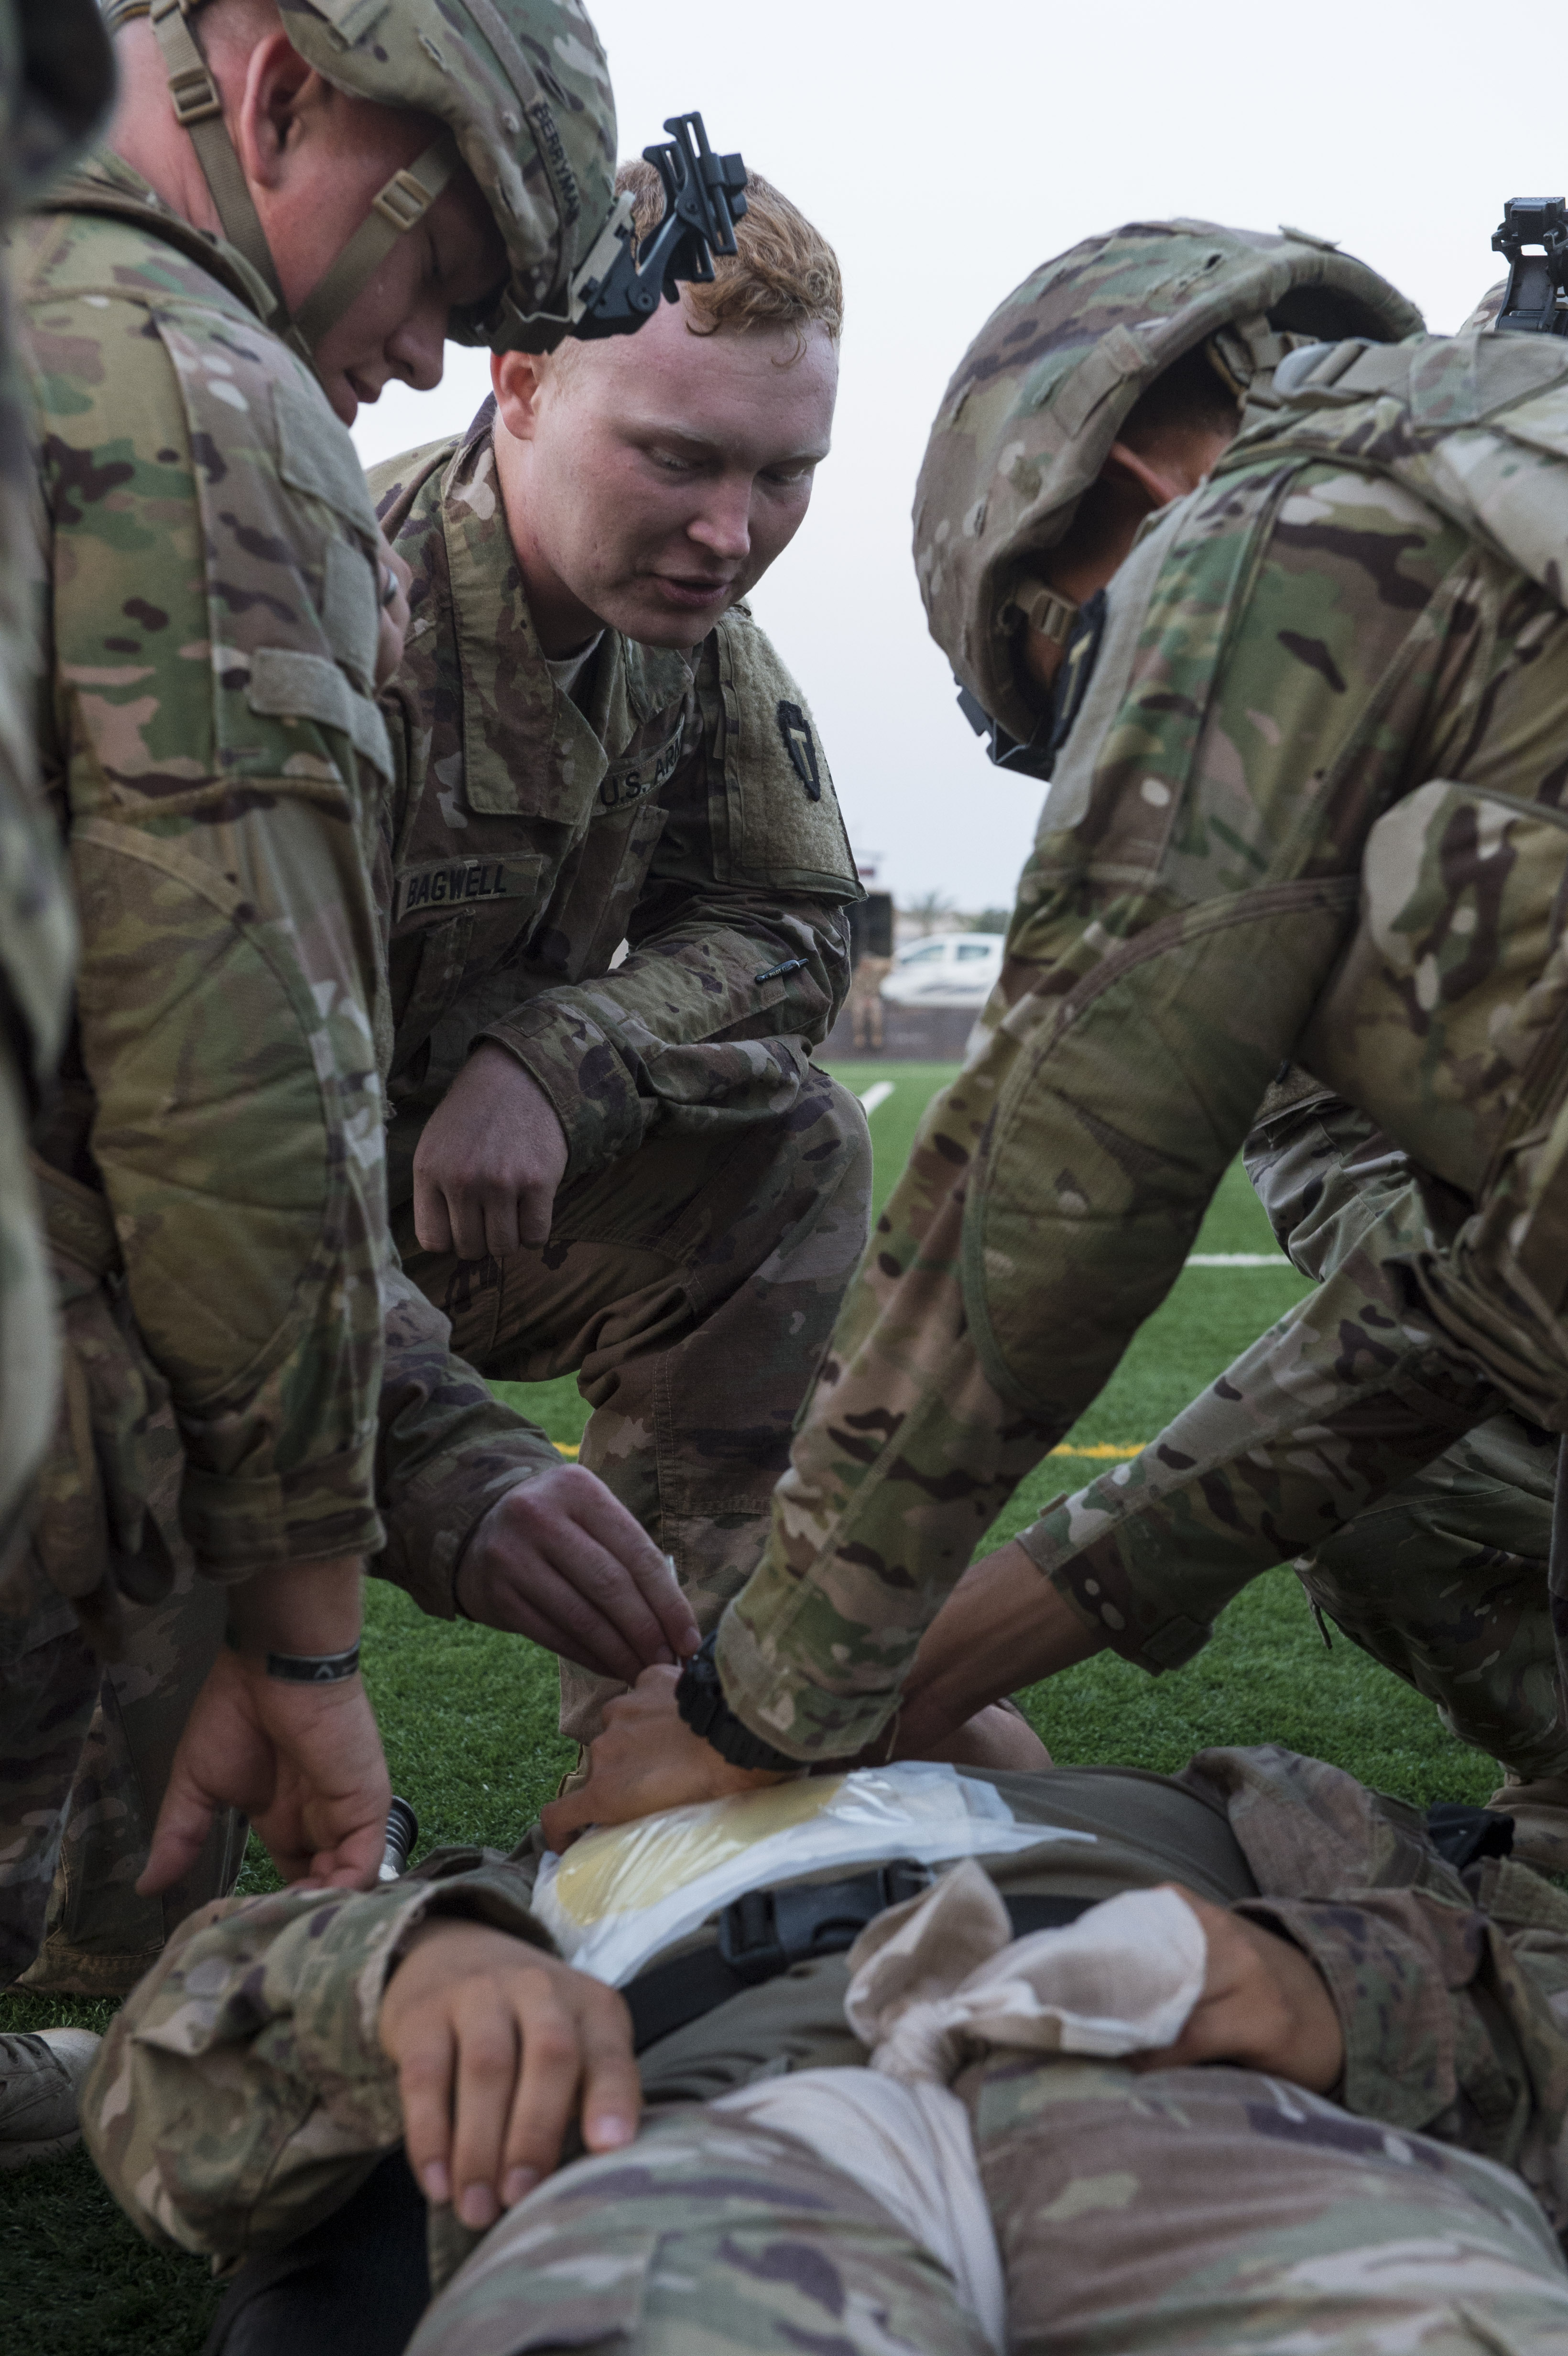 U.S. Army Spc. Alex Bagwell, a combat medic assigned to Task Force Bayonet, Combined Joint Task Force - Horn of Africa, instructs members of a site security team how to administer a chest decompression needle during a Combat Lifesaver (CLS) training event at Camp Lemonnier, Djibouti, Dec. 30, 2017. Participants demonstrated CLS principals during scenarios that simulated being under enemy fire, having the possibility to come under enemy fire, and moving casualties to medical facilities. (U.S. Air Force photo by Staff Sgt. Timothy Moore)